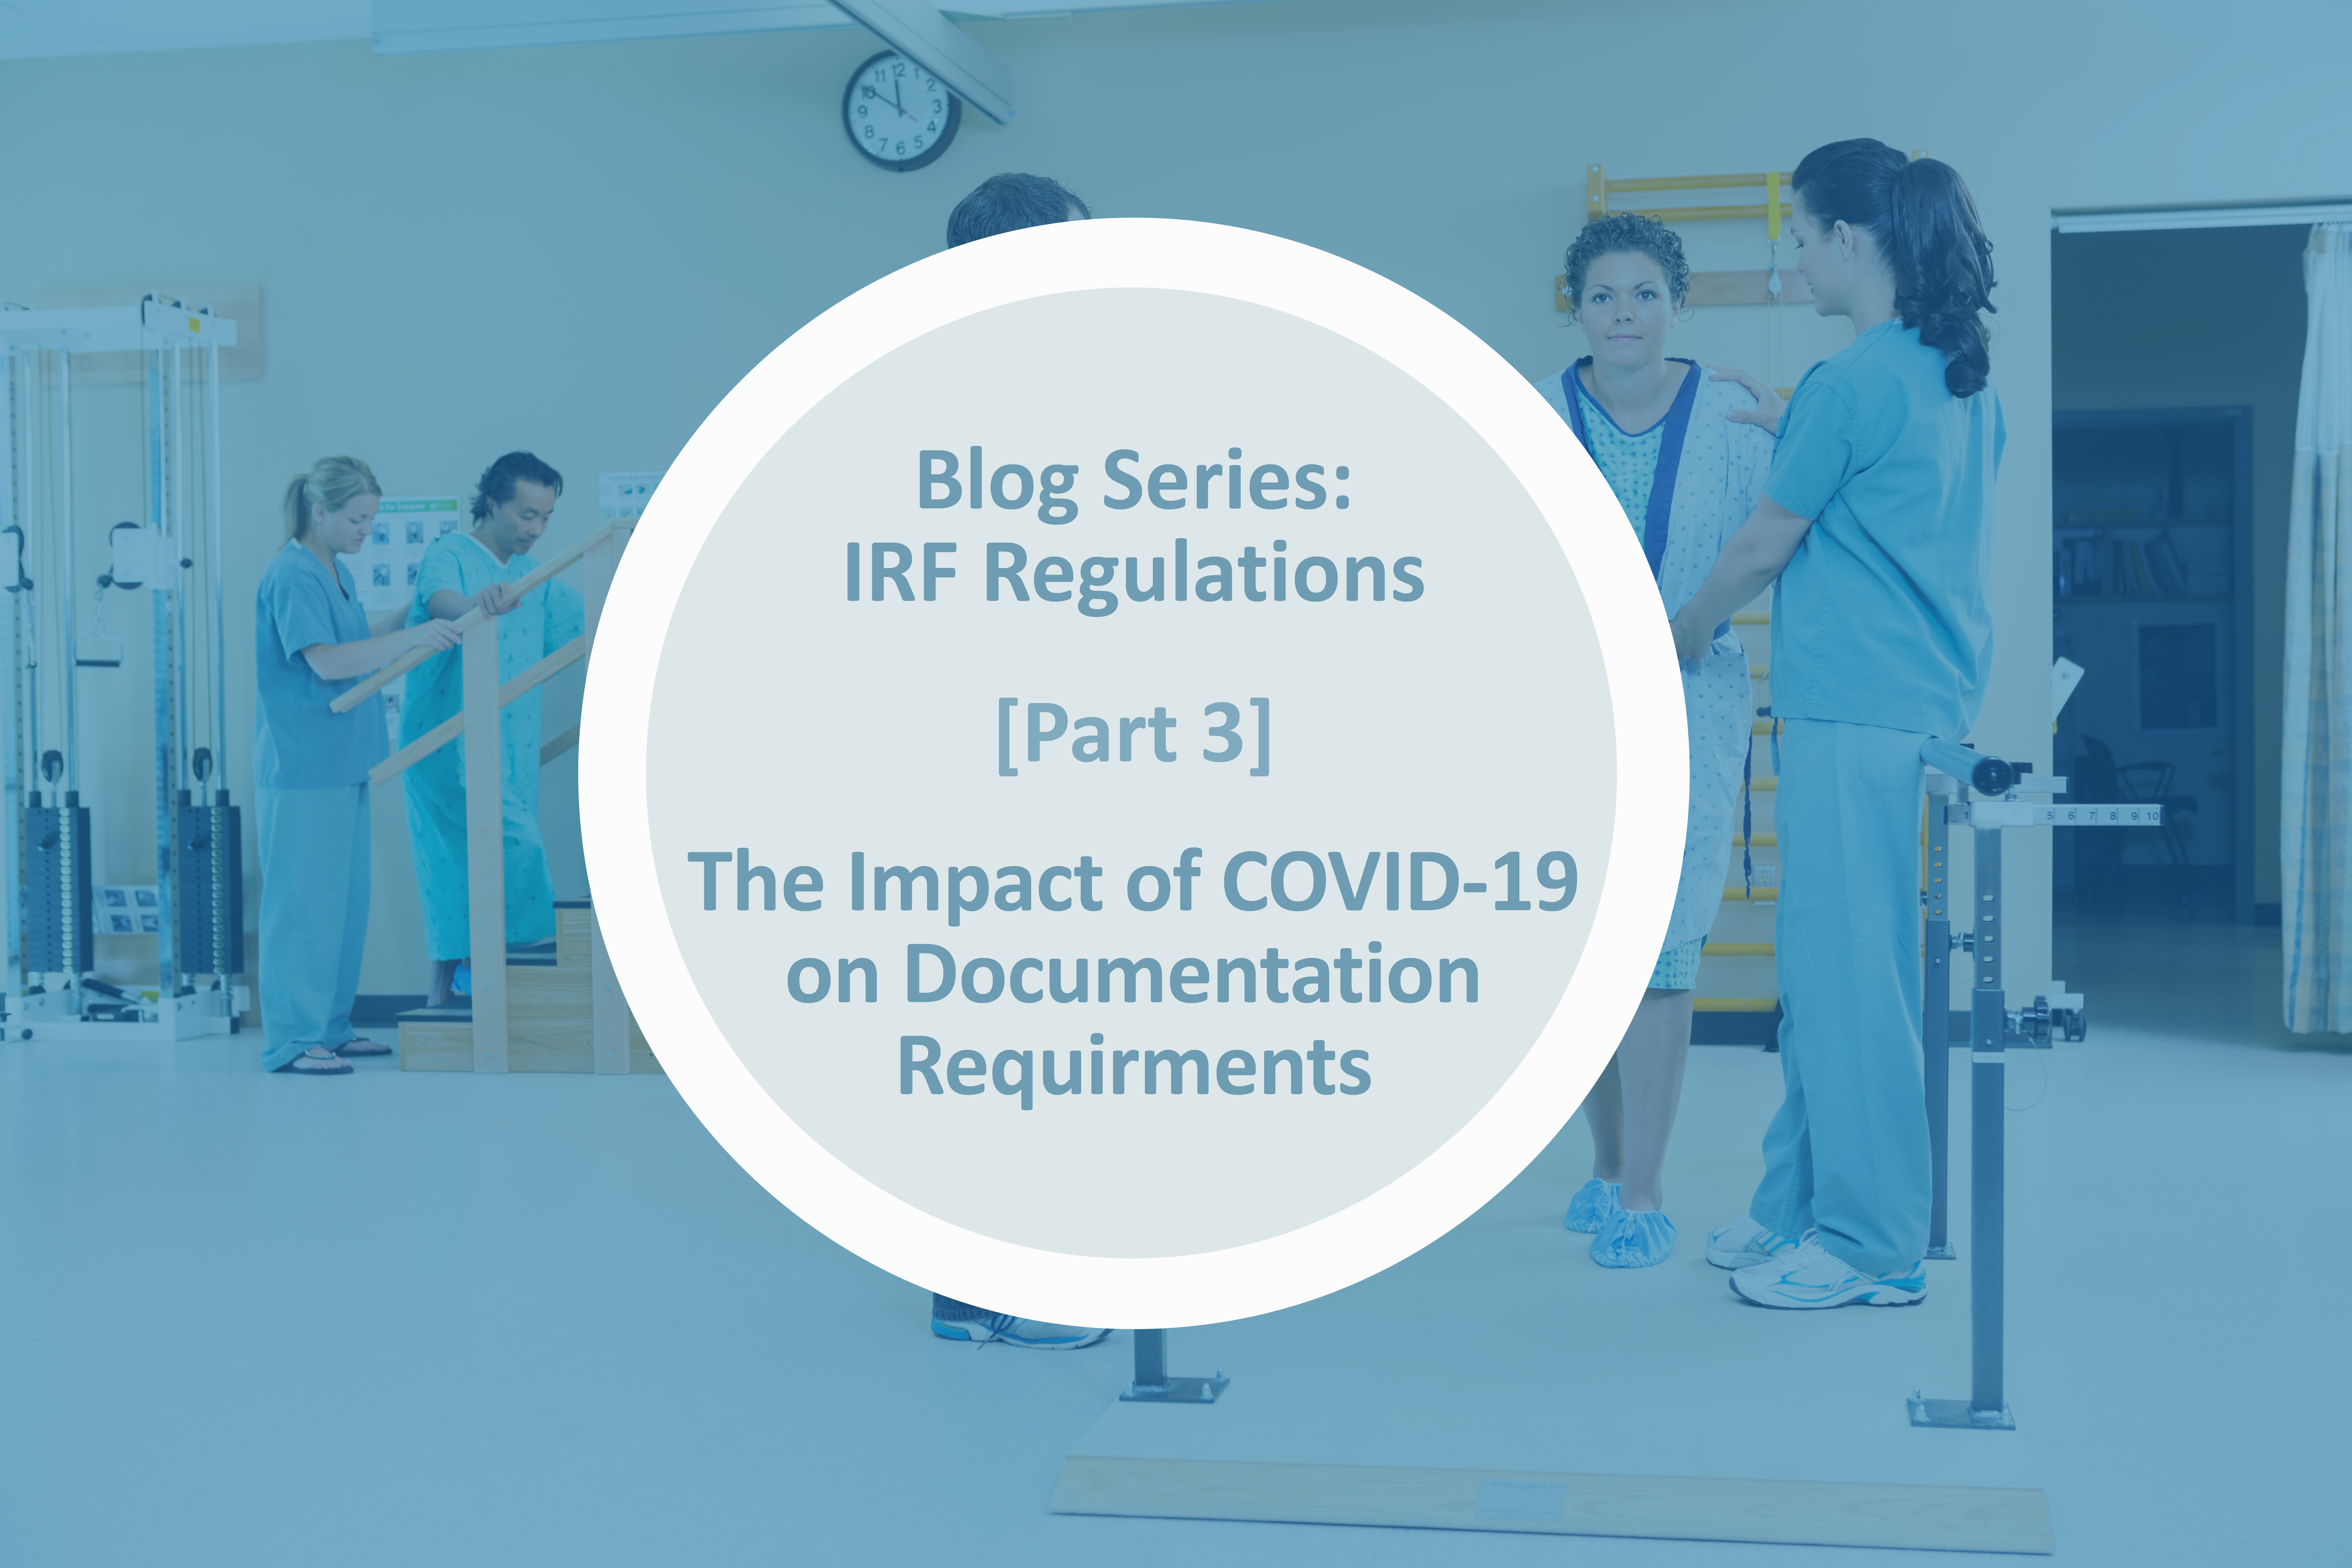 [Blog Series] IRF Regulations Part 3: The Impact of COVID-19 on Documentation Requirements